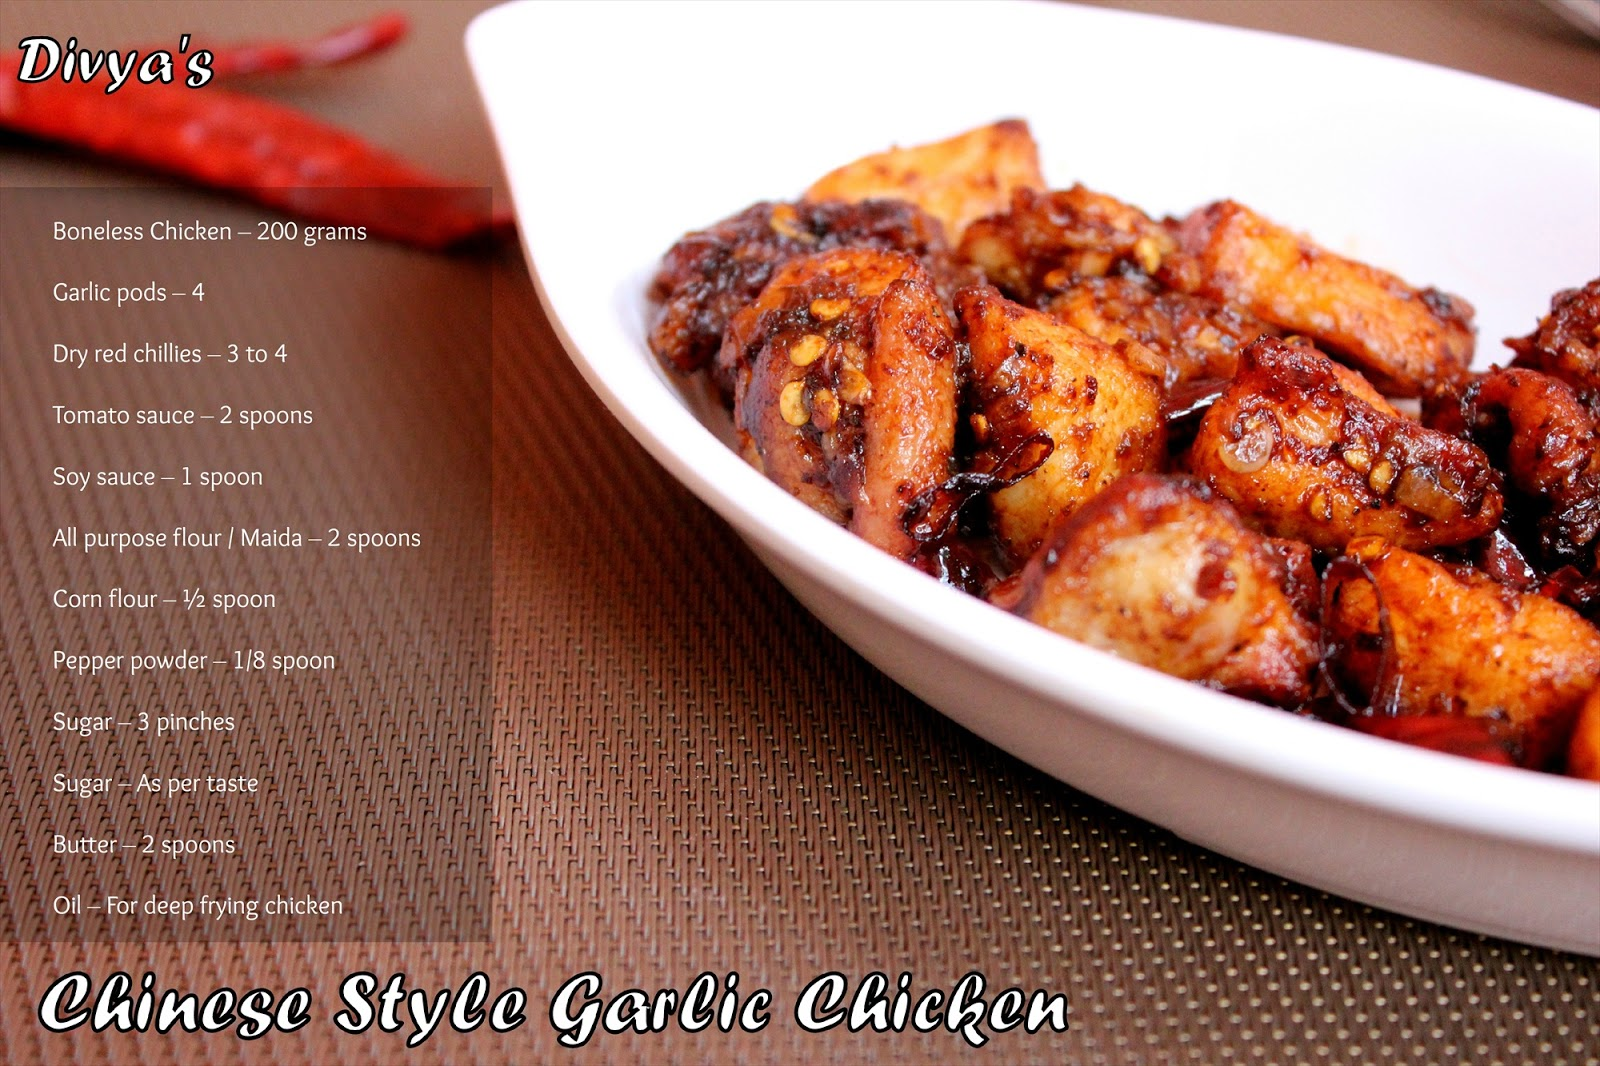 Chinese food recipes garlic chicken food chicken recipes chinese food recipes garlic chicken forumfinder Images